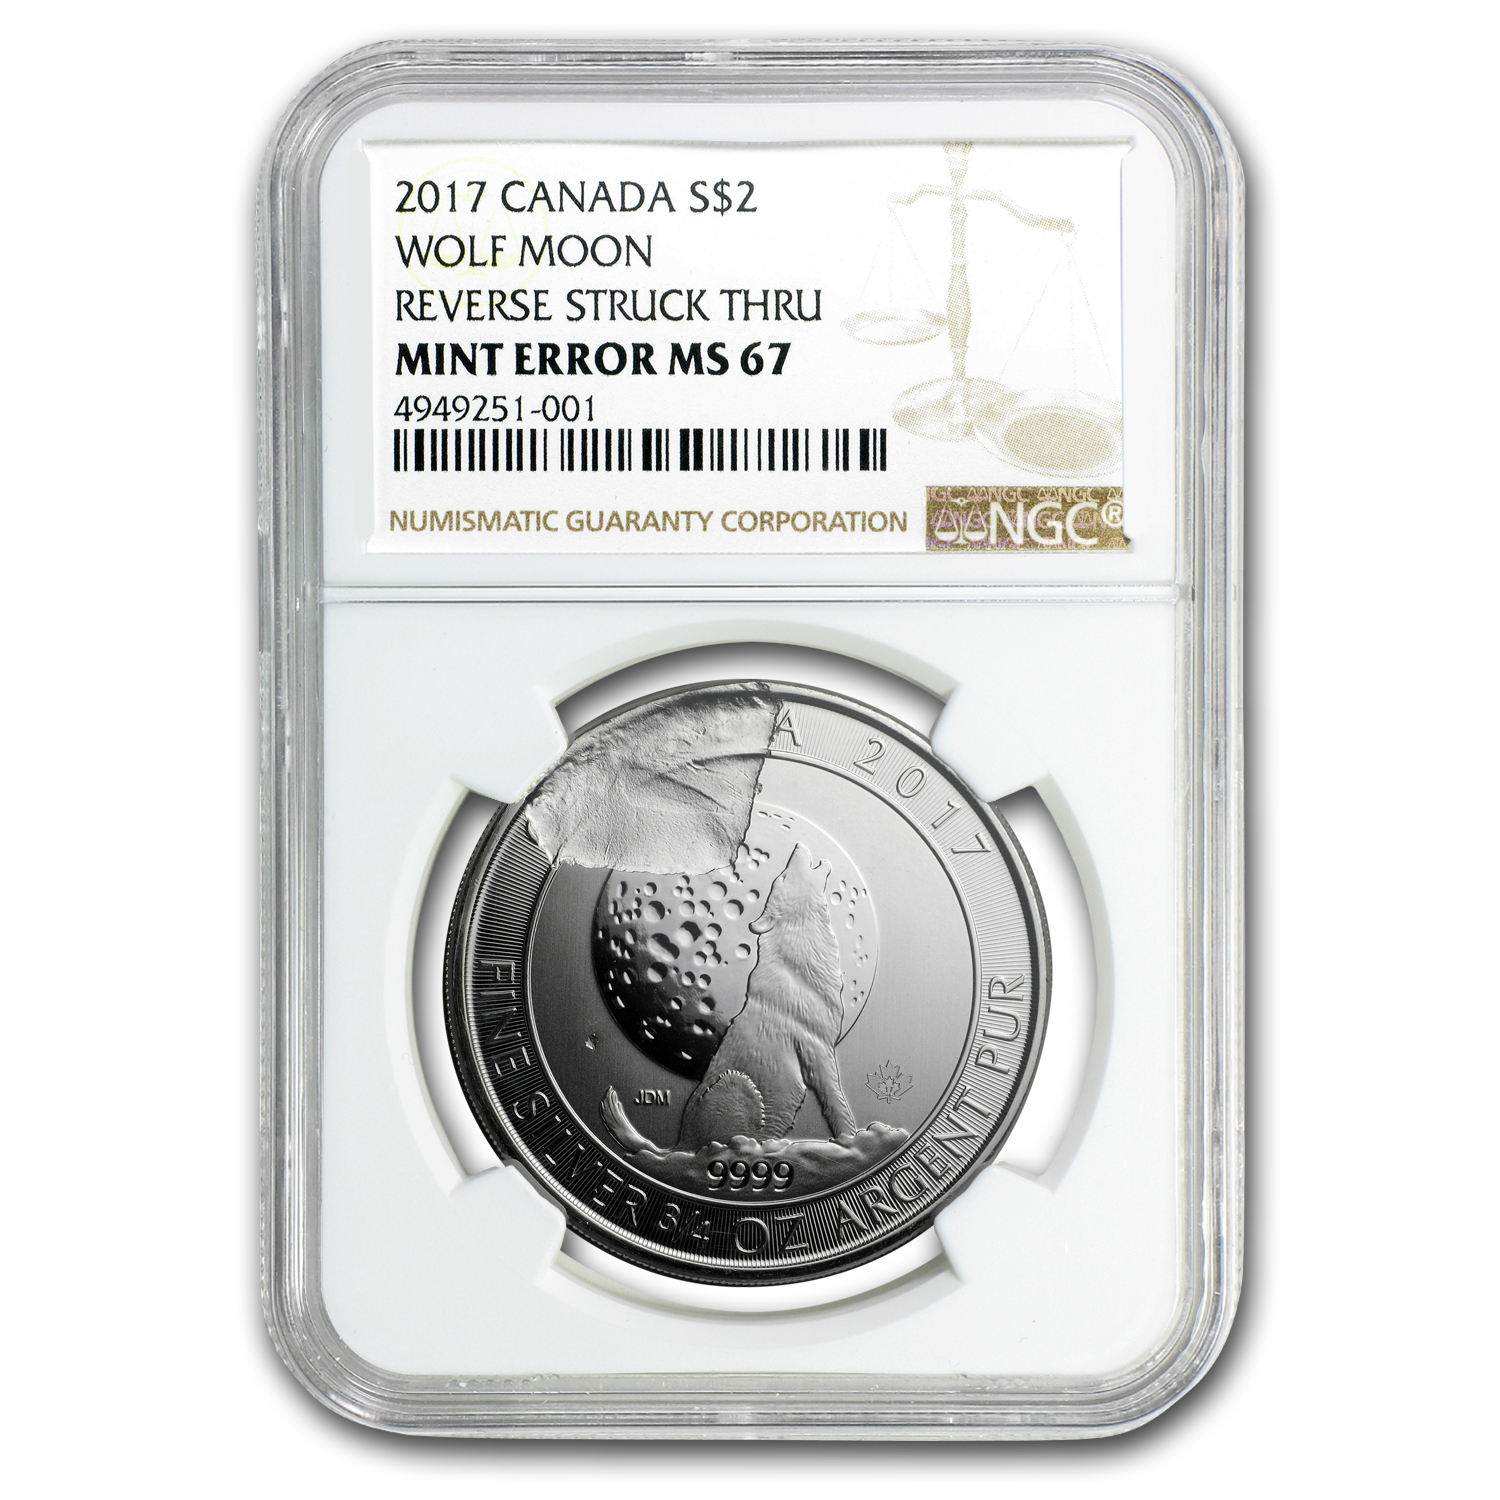 2017 Canada 3/4 oz Silver Wolf Moon MS-67 NGC (Mint Error)